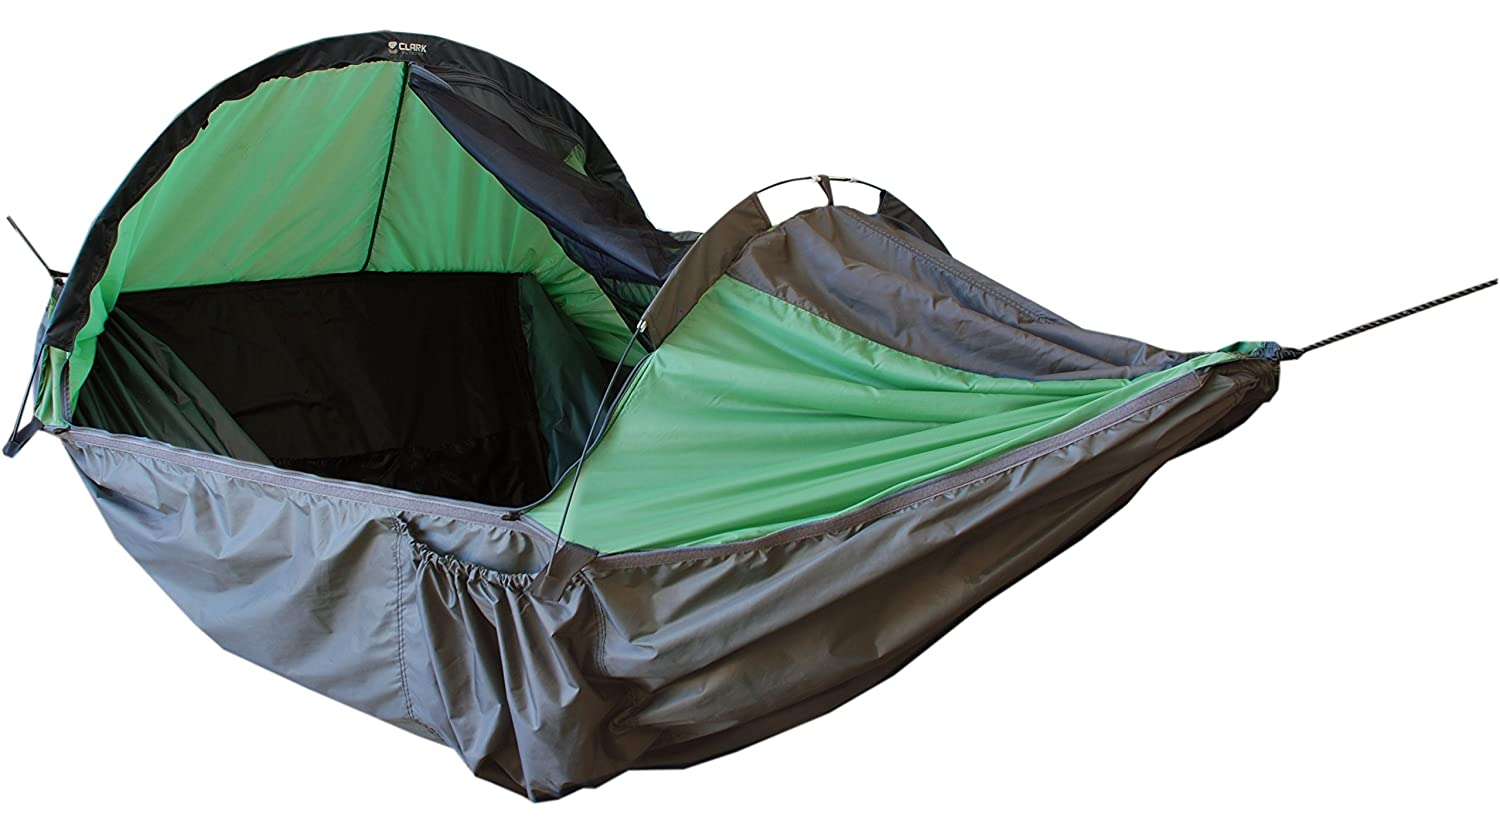 sc 1 st  Amazon.com & Amazon.com : Clark Vertex 2-Person Double Hammock : Sports u0026 Outdoors